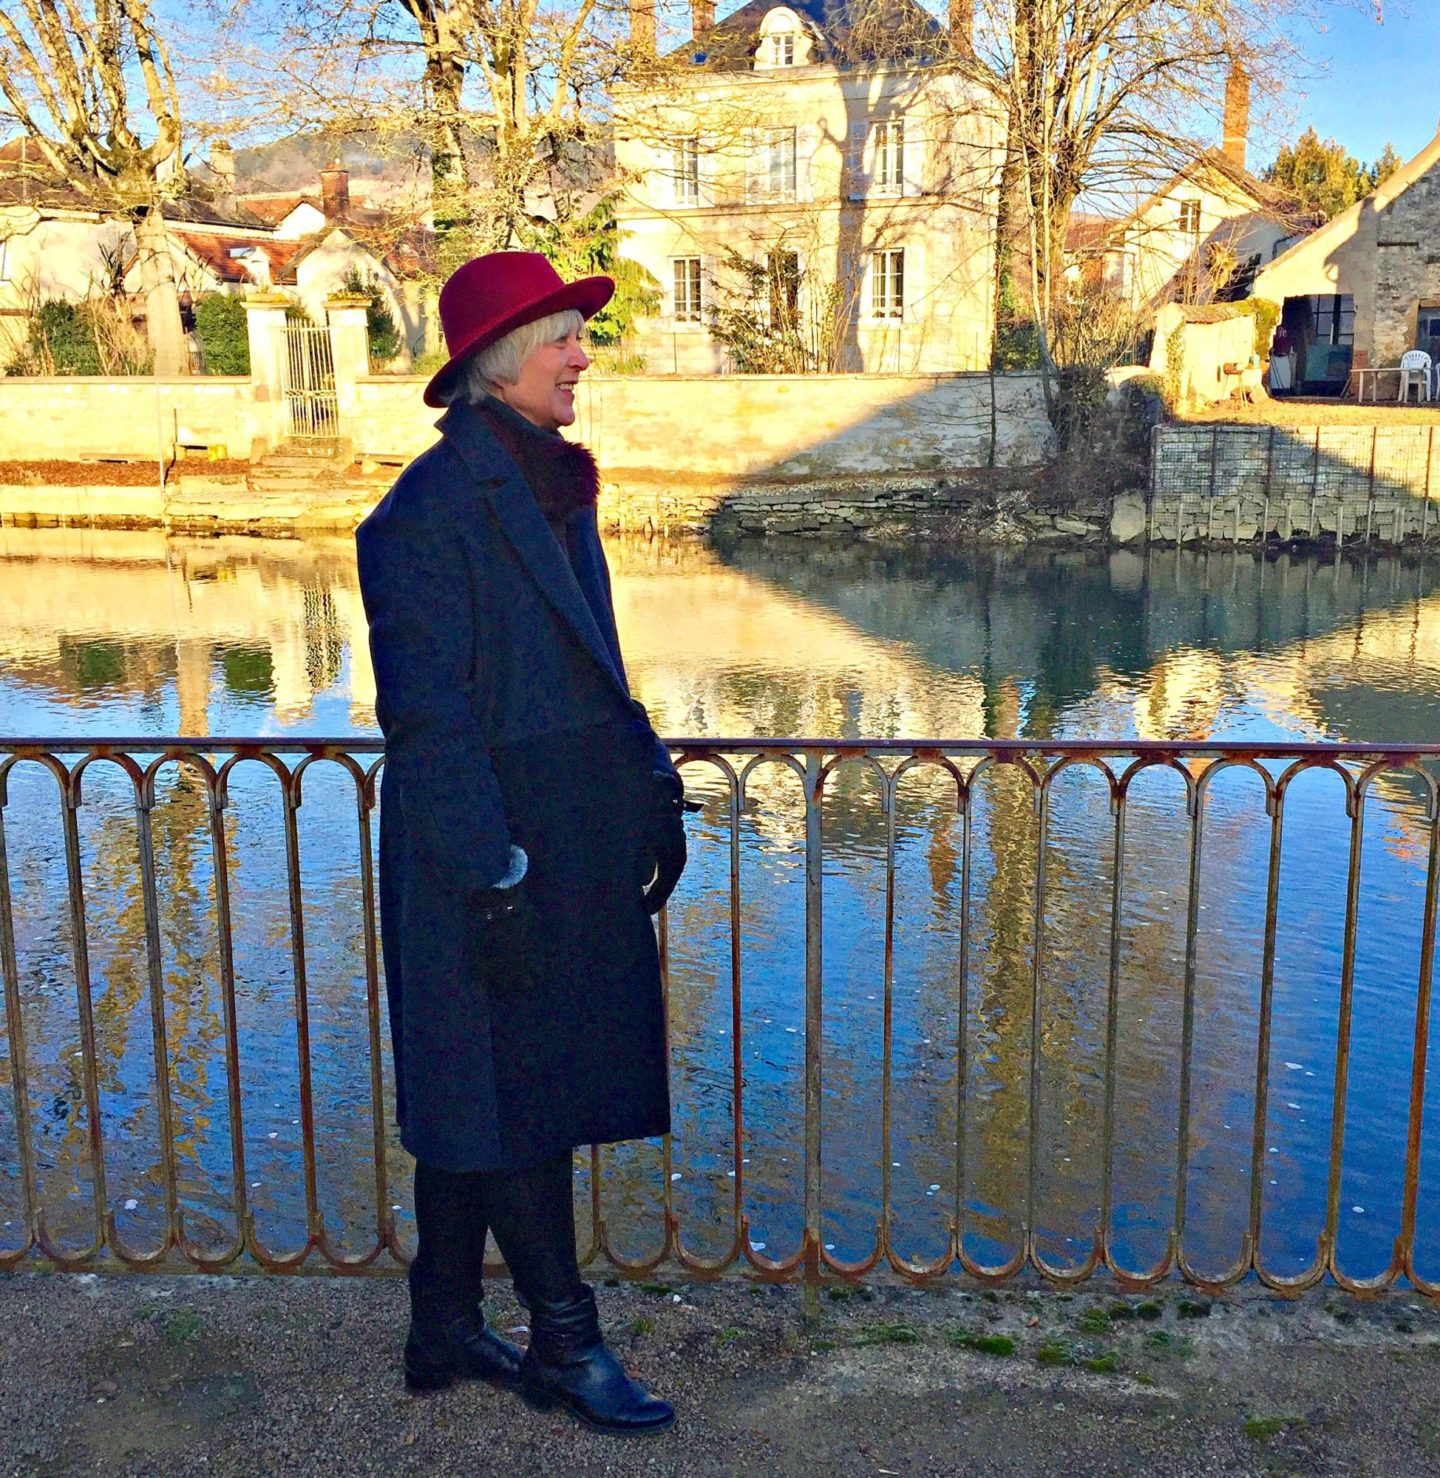 warm coat and red hat to keep warm in Chablis